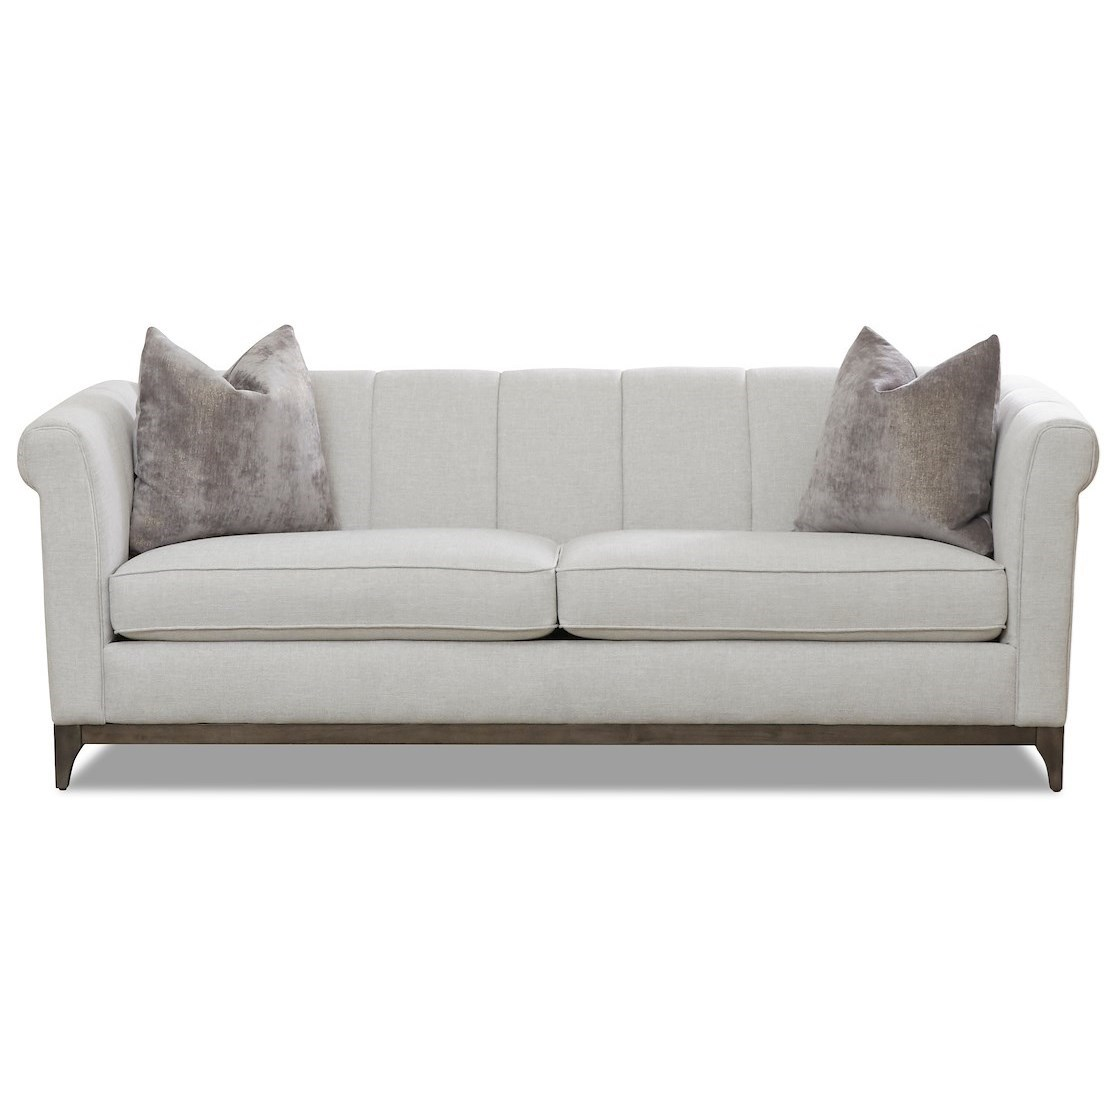 Nigel Sofa by Klaussner at Northeast Factory Direct